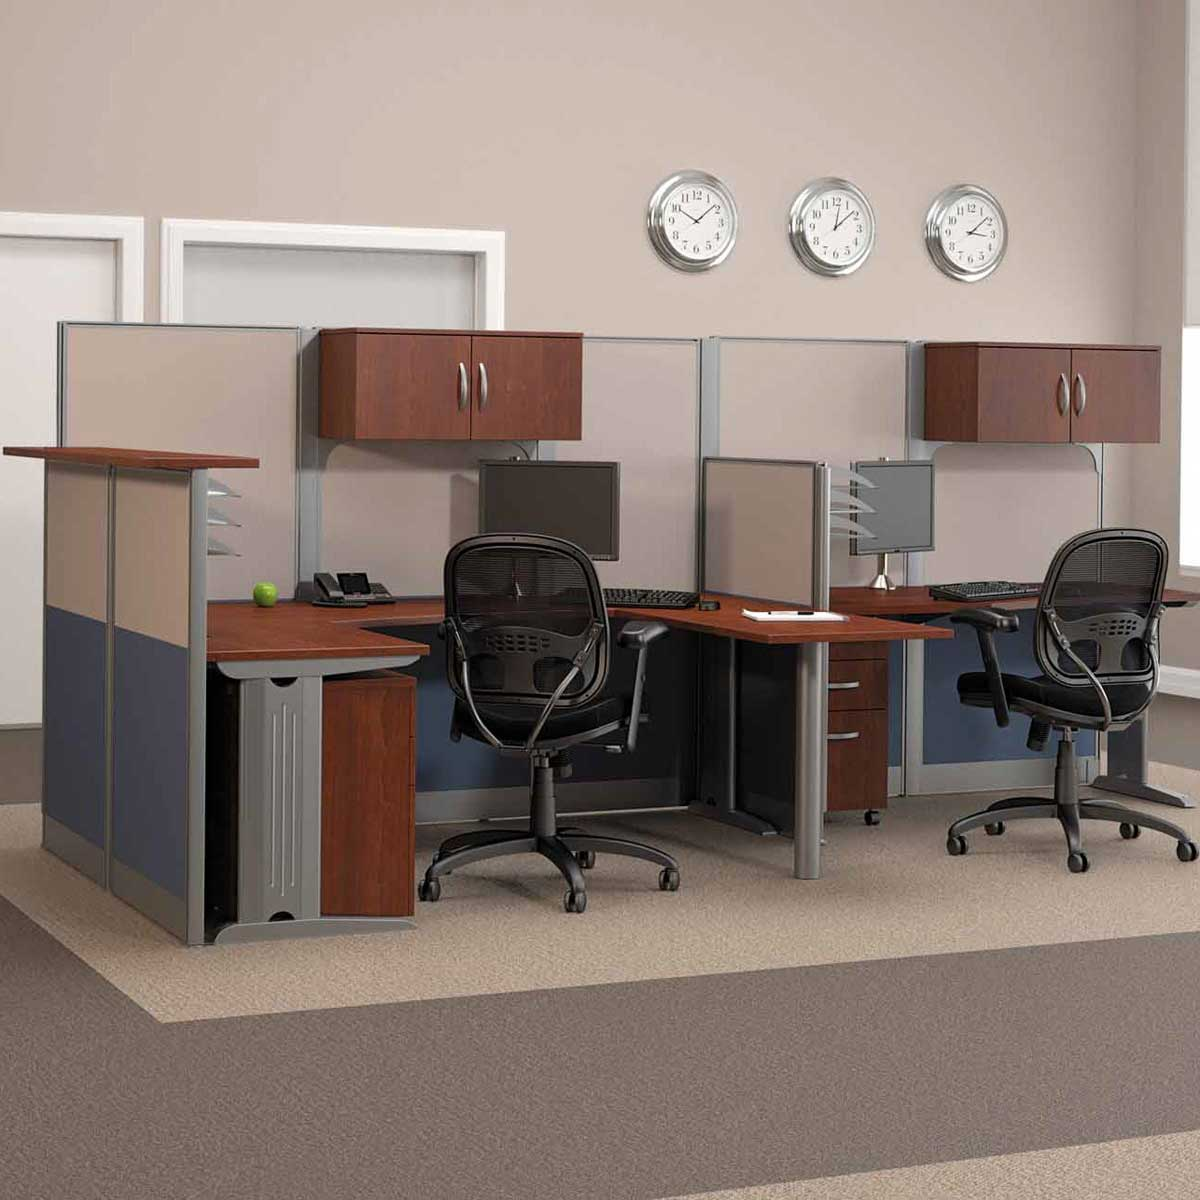 deluxe corner computer workstation desk | Office Furniture